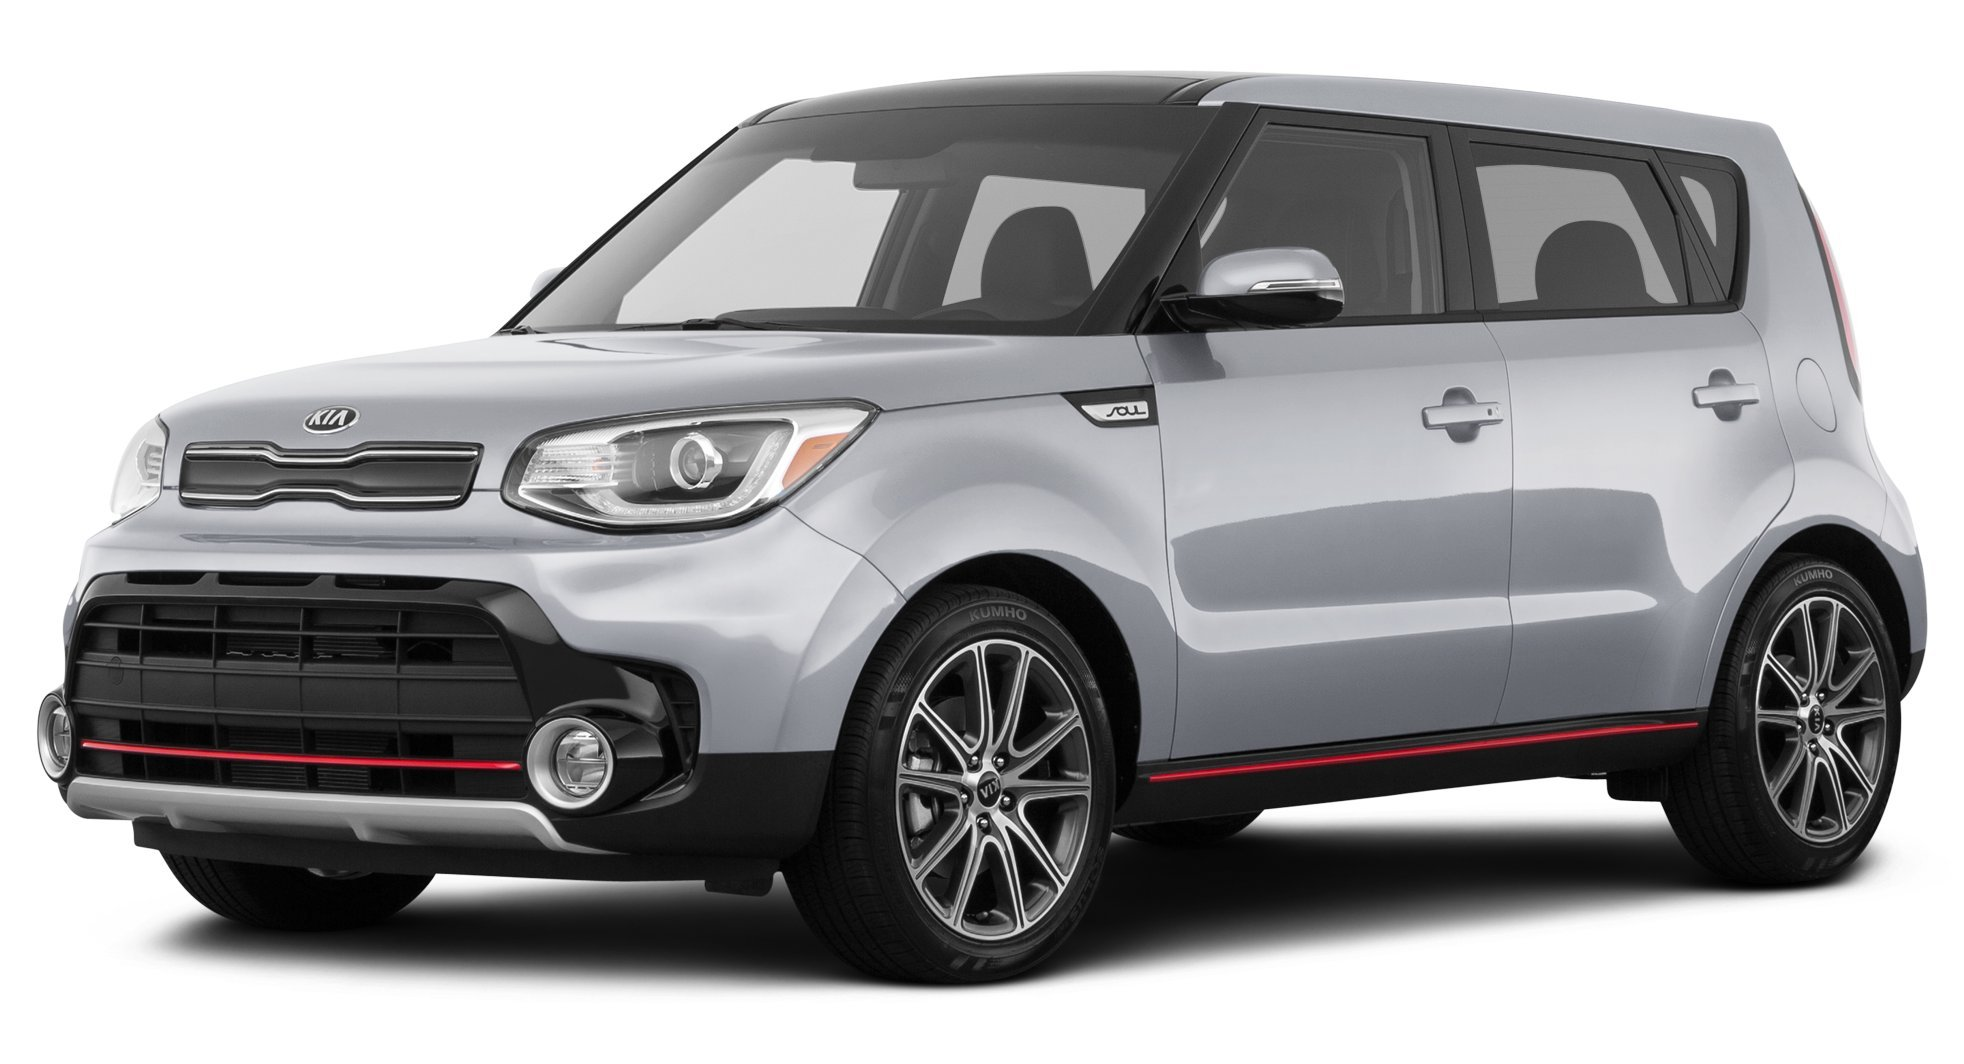 2018 kia soul reviews images and specs vehicles. Black Bedroom Furniture Sets. Home Design Ideas